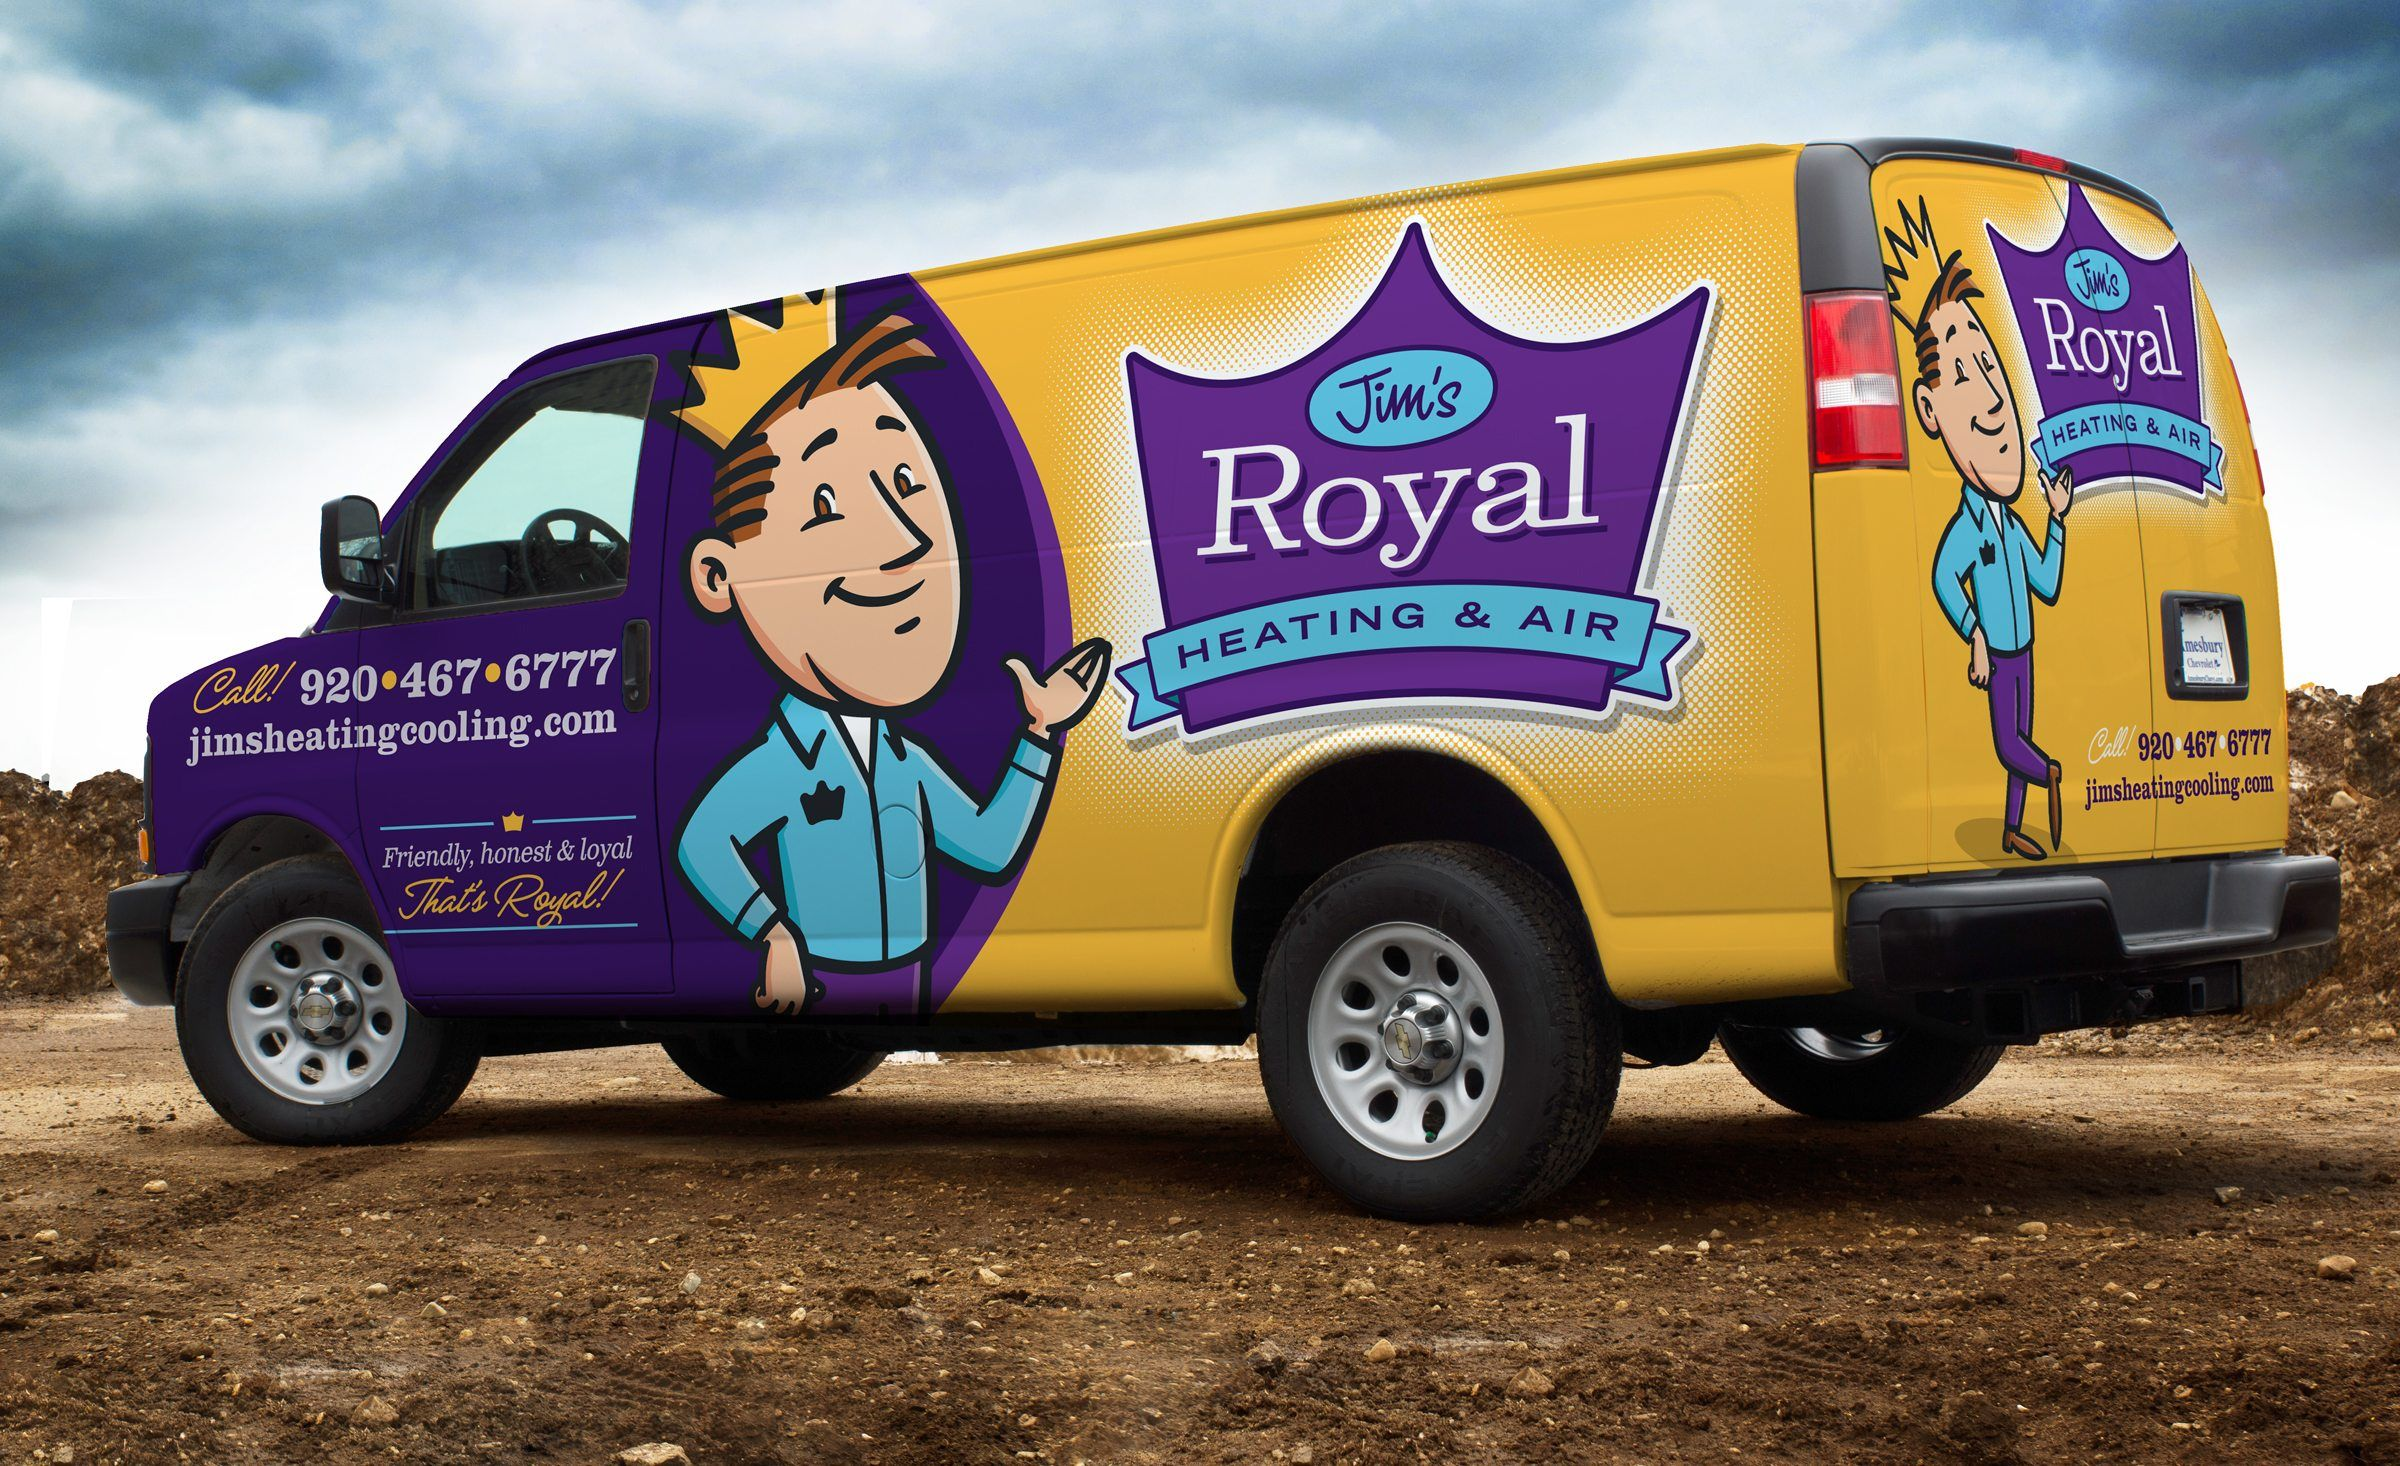 Jim S Royal Heating Air Kickcharge Creative Car Wrap Design